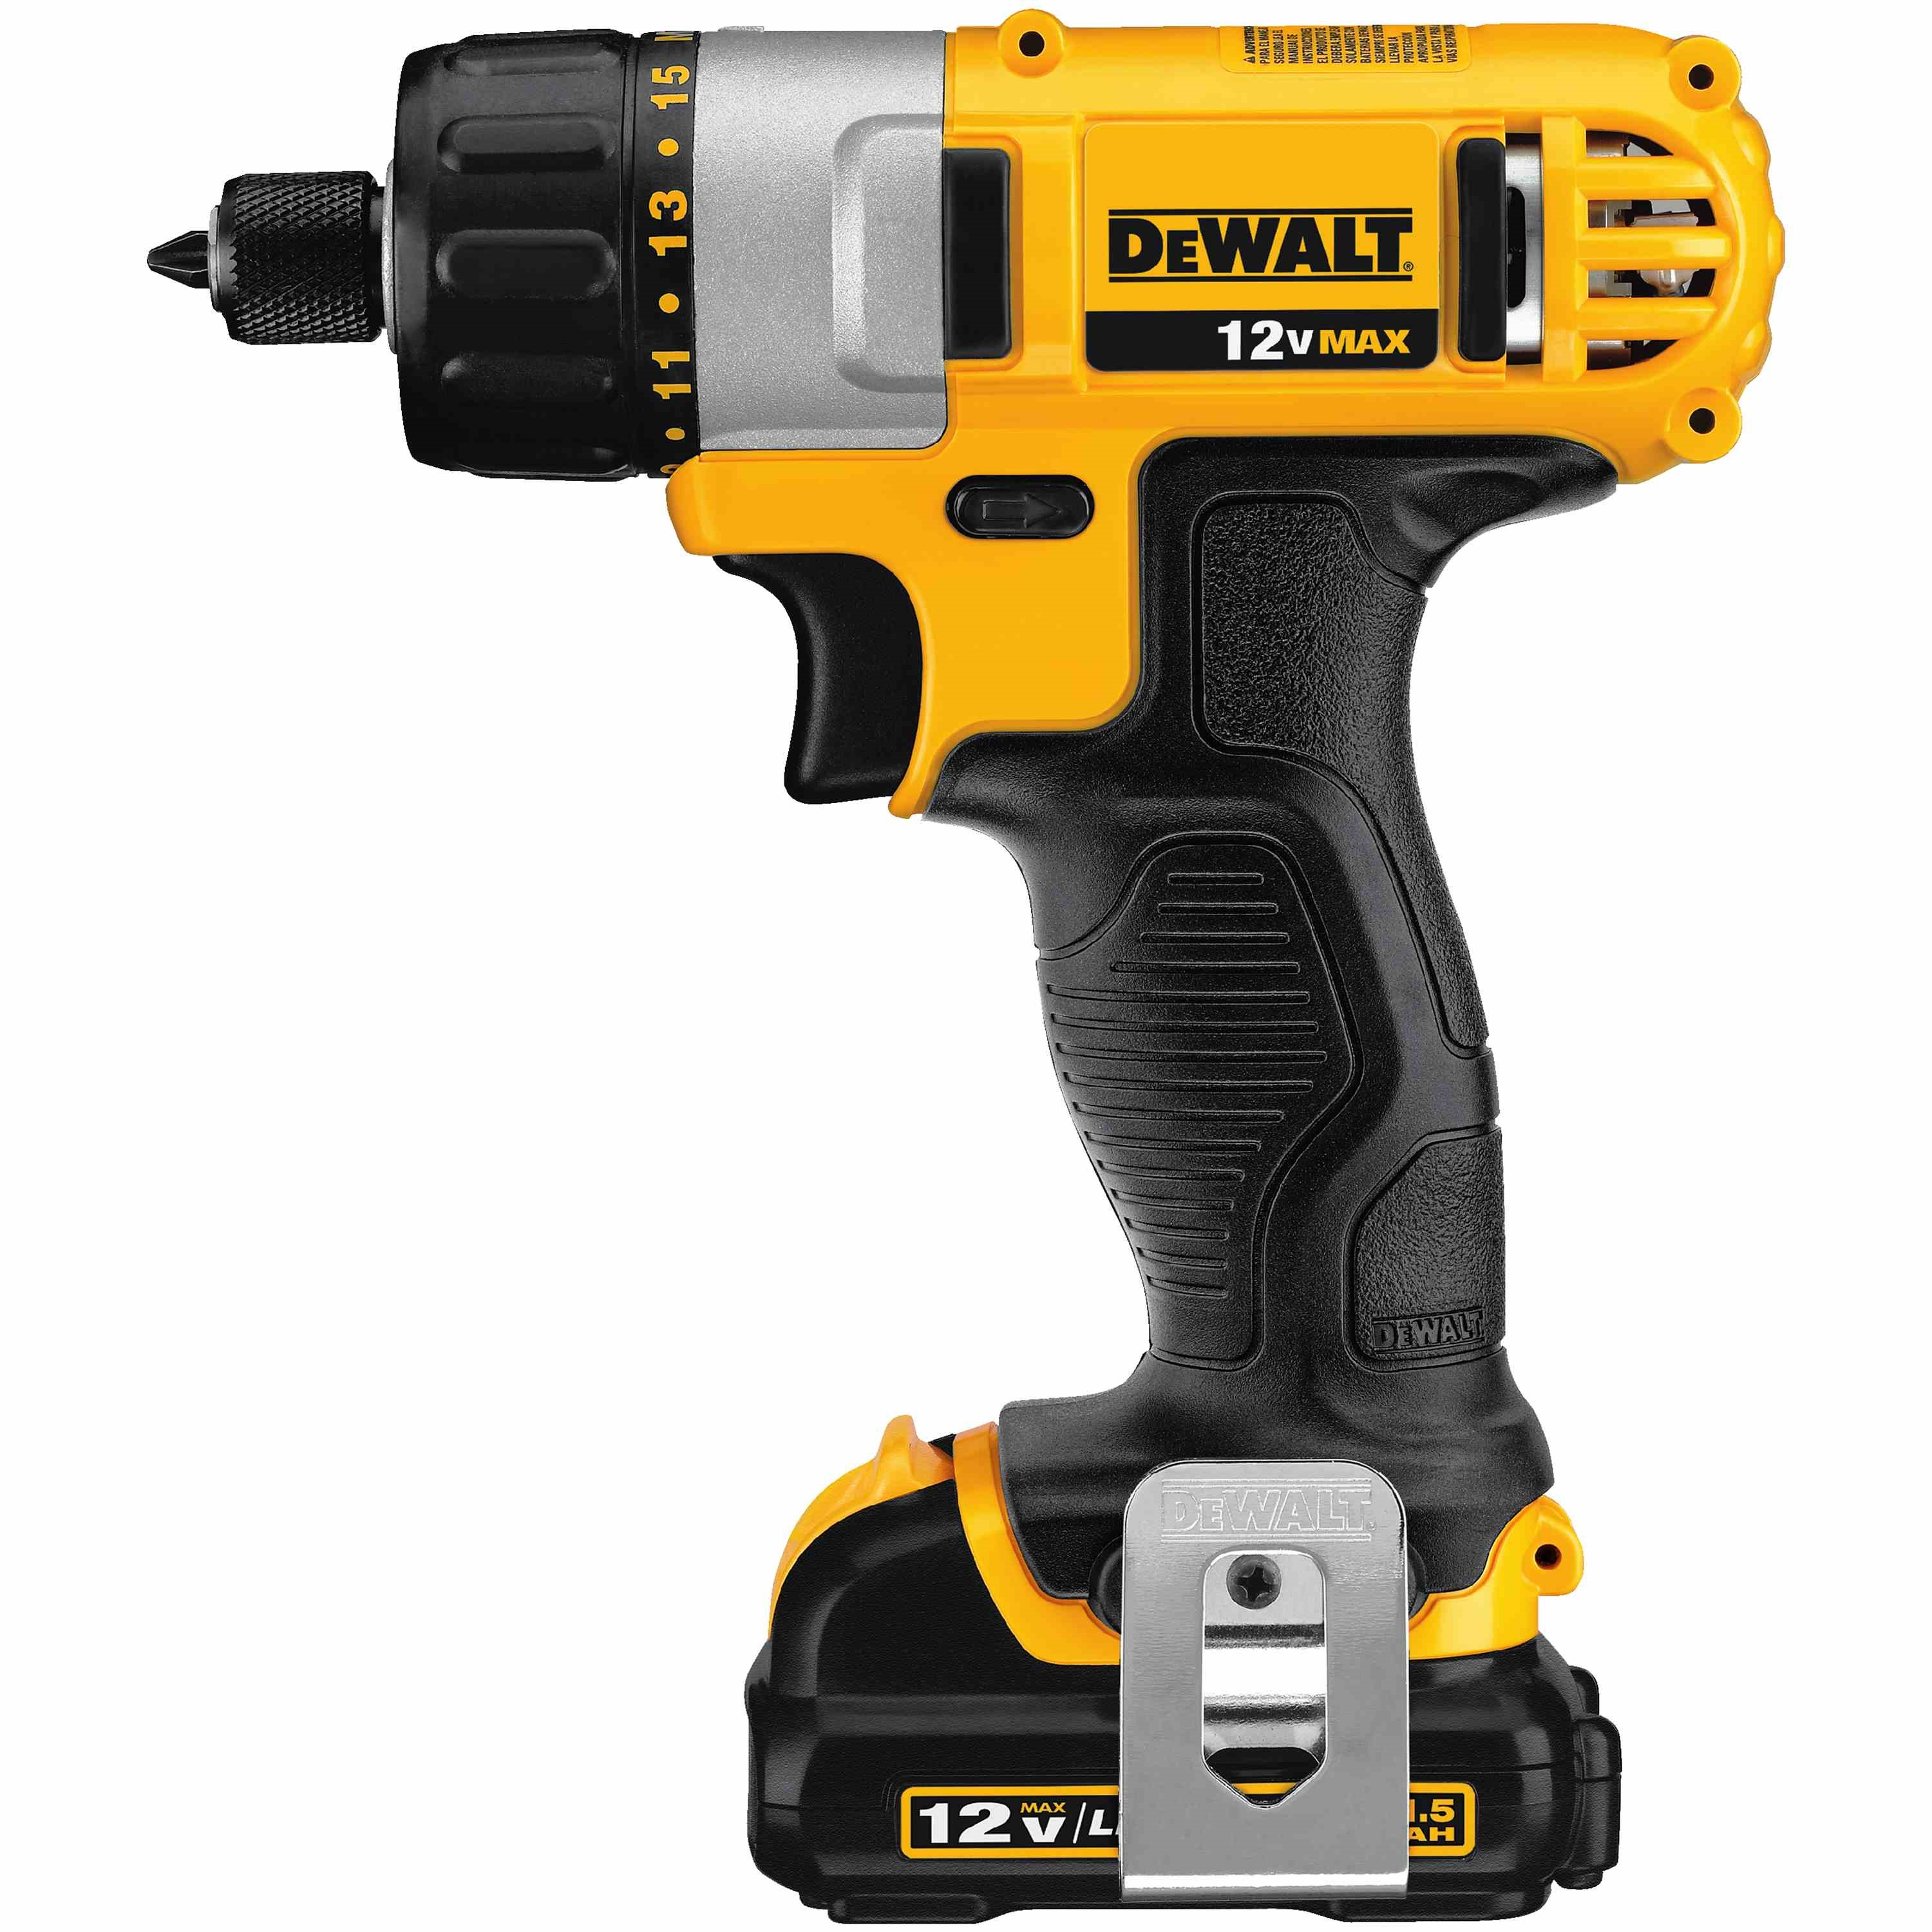 DWLT DCF610S2 SCREWDRIVER KIT,DEWALT,12 V MAX,0 - 1050 RPM (NO LOAD),LITHIUM ION BAT